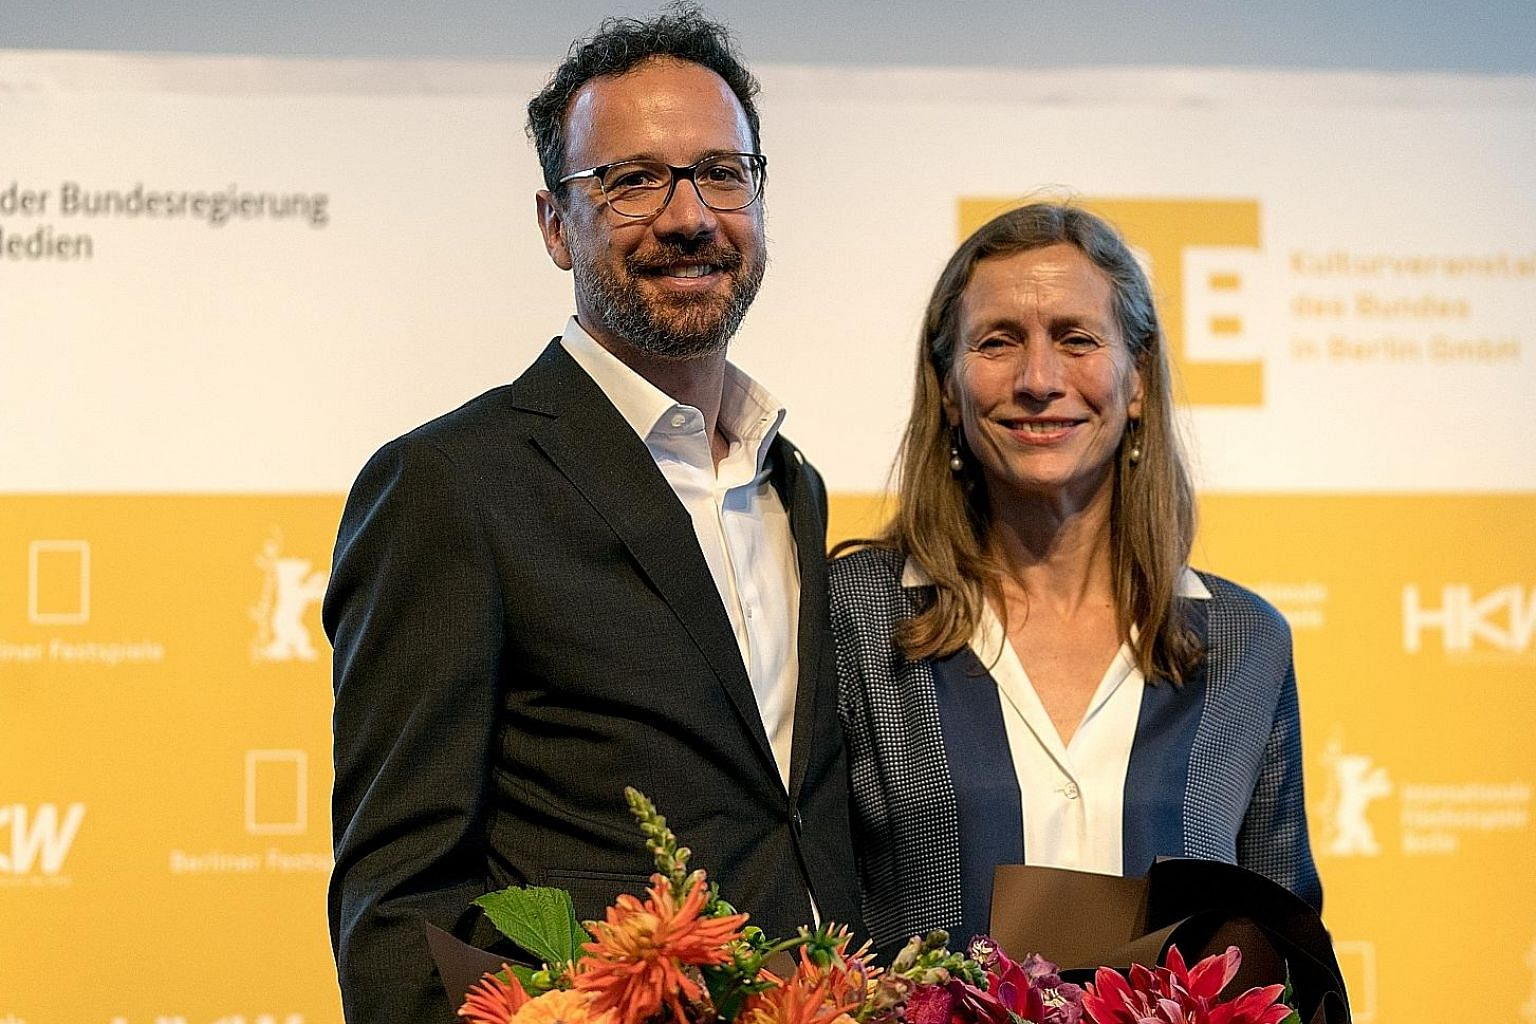 Mr Carlo Chatrian will be the artistic director of the 2020 Berlin Film Festival, while Ms Mariette Rissenbeek will be its managing director.